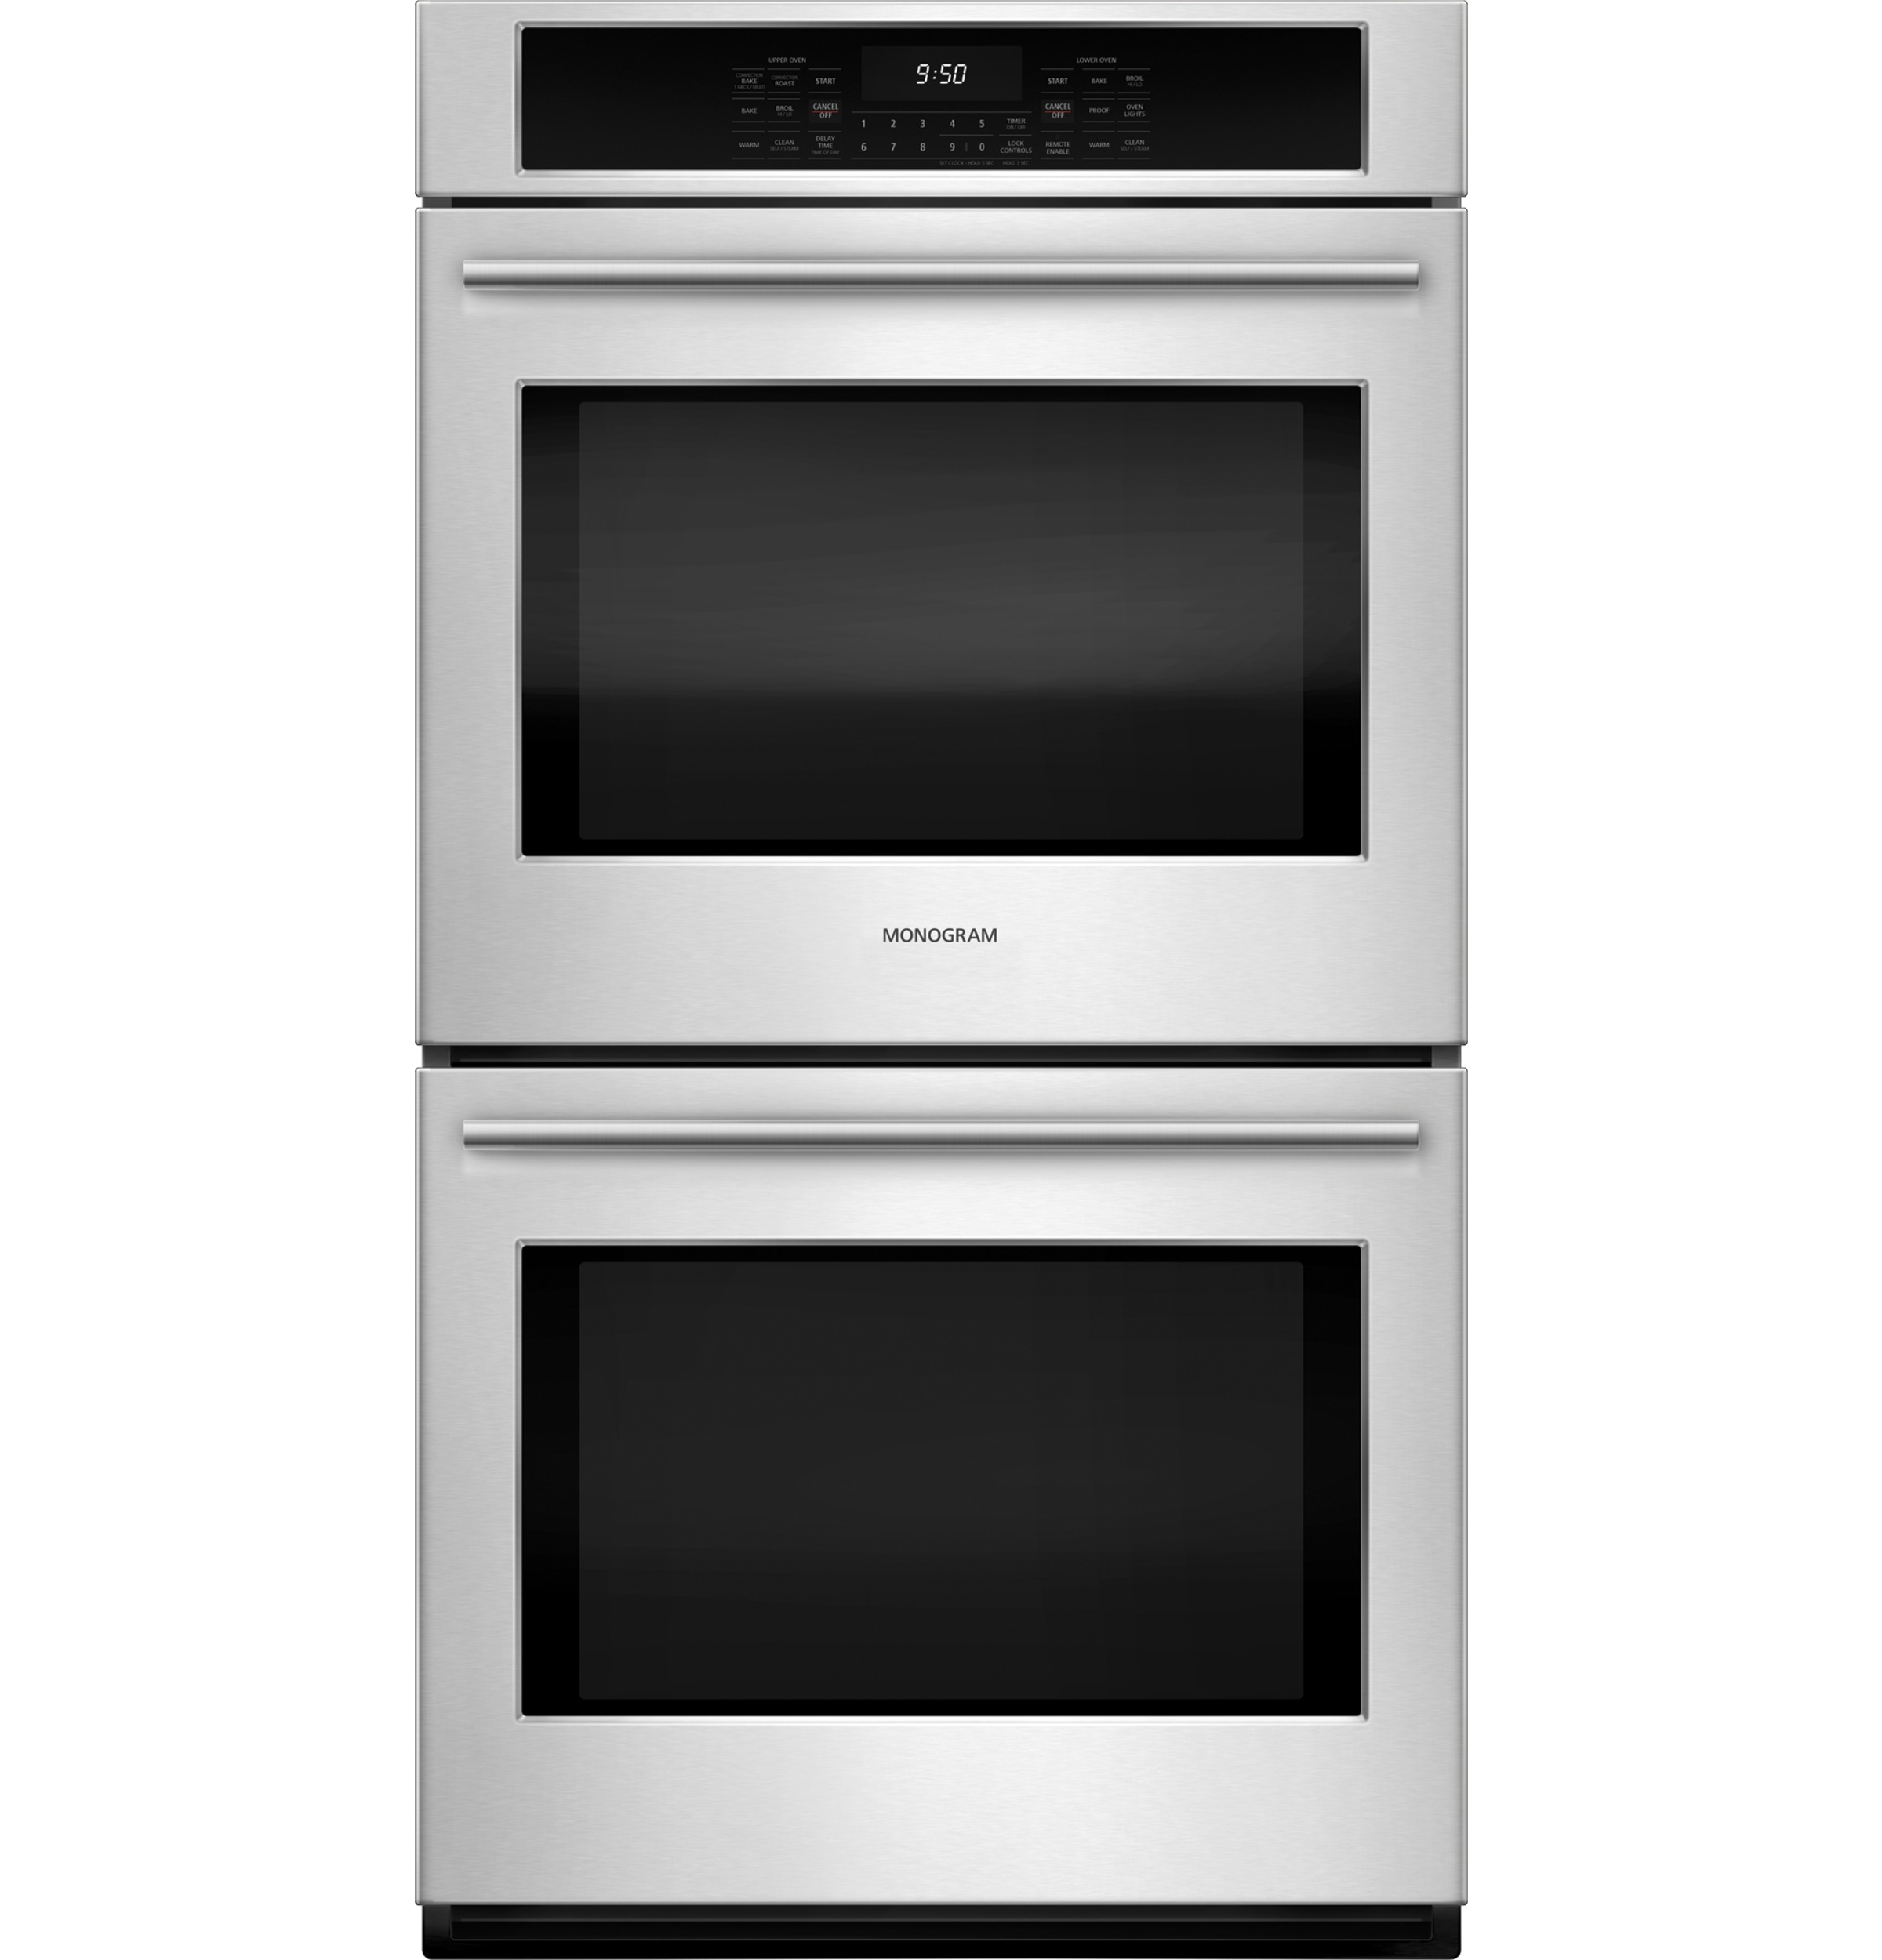 Best Picture Of Kitchenaid Wall Oven Self Cleaning Instructions - Product image